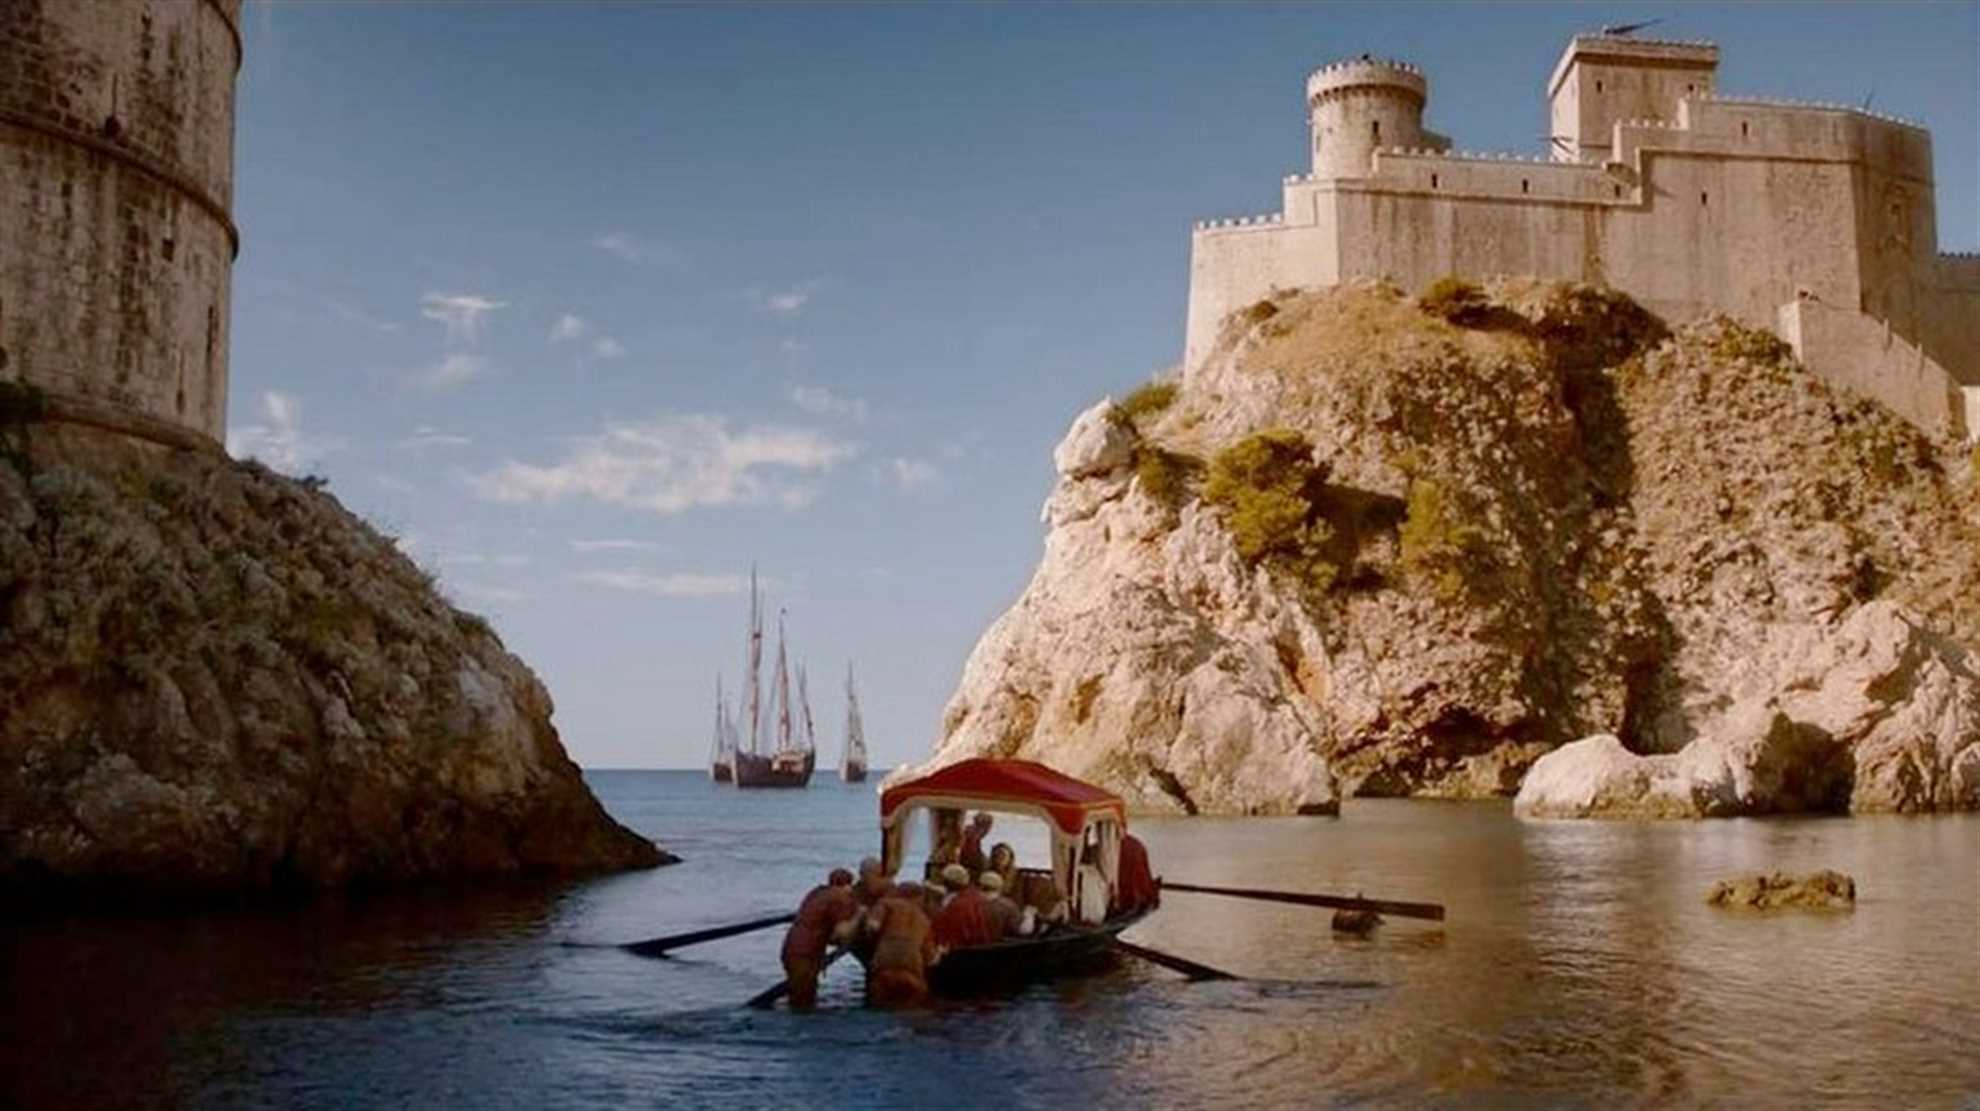 Dubrovnik in Game of Thrones